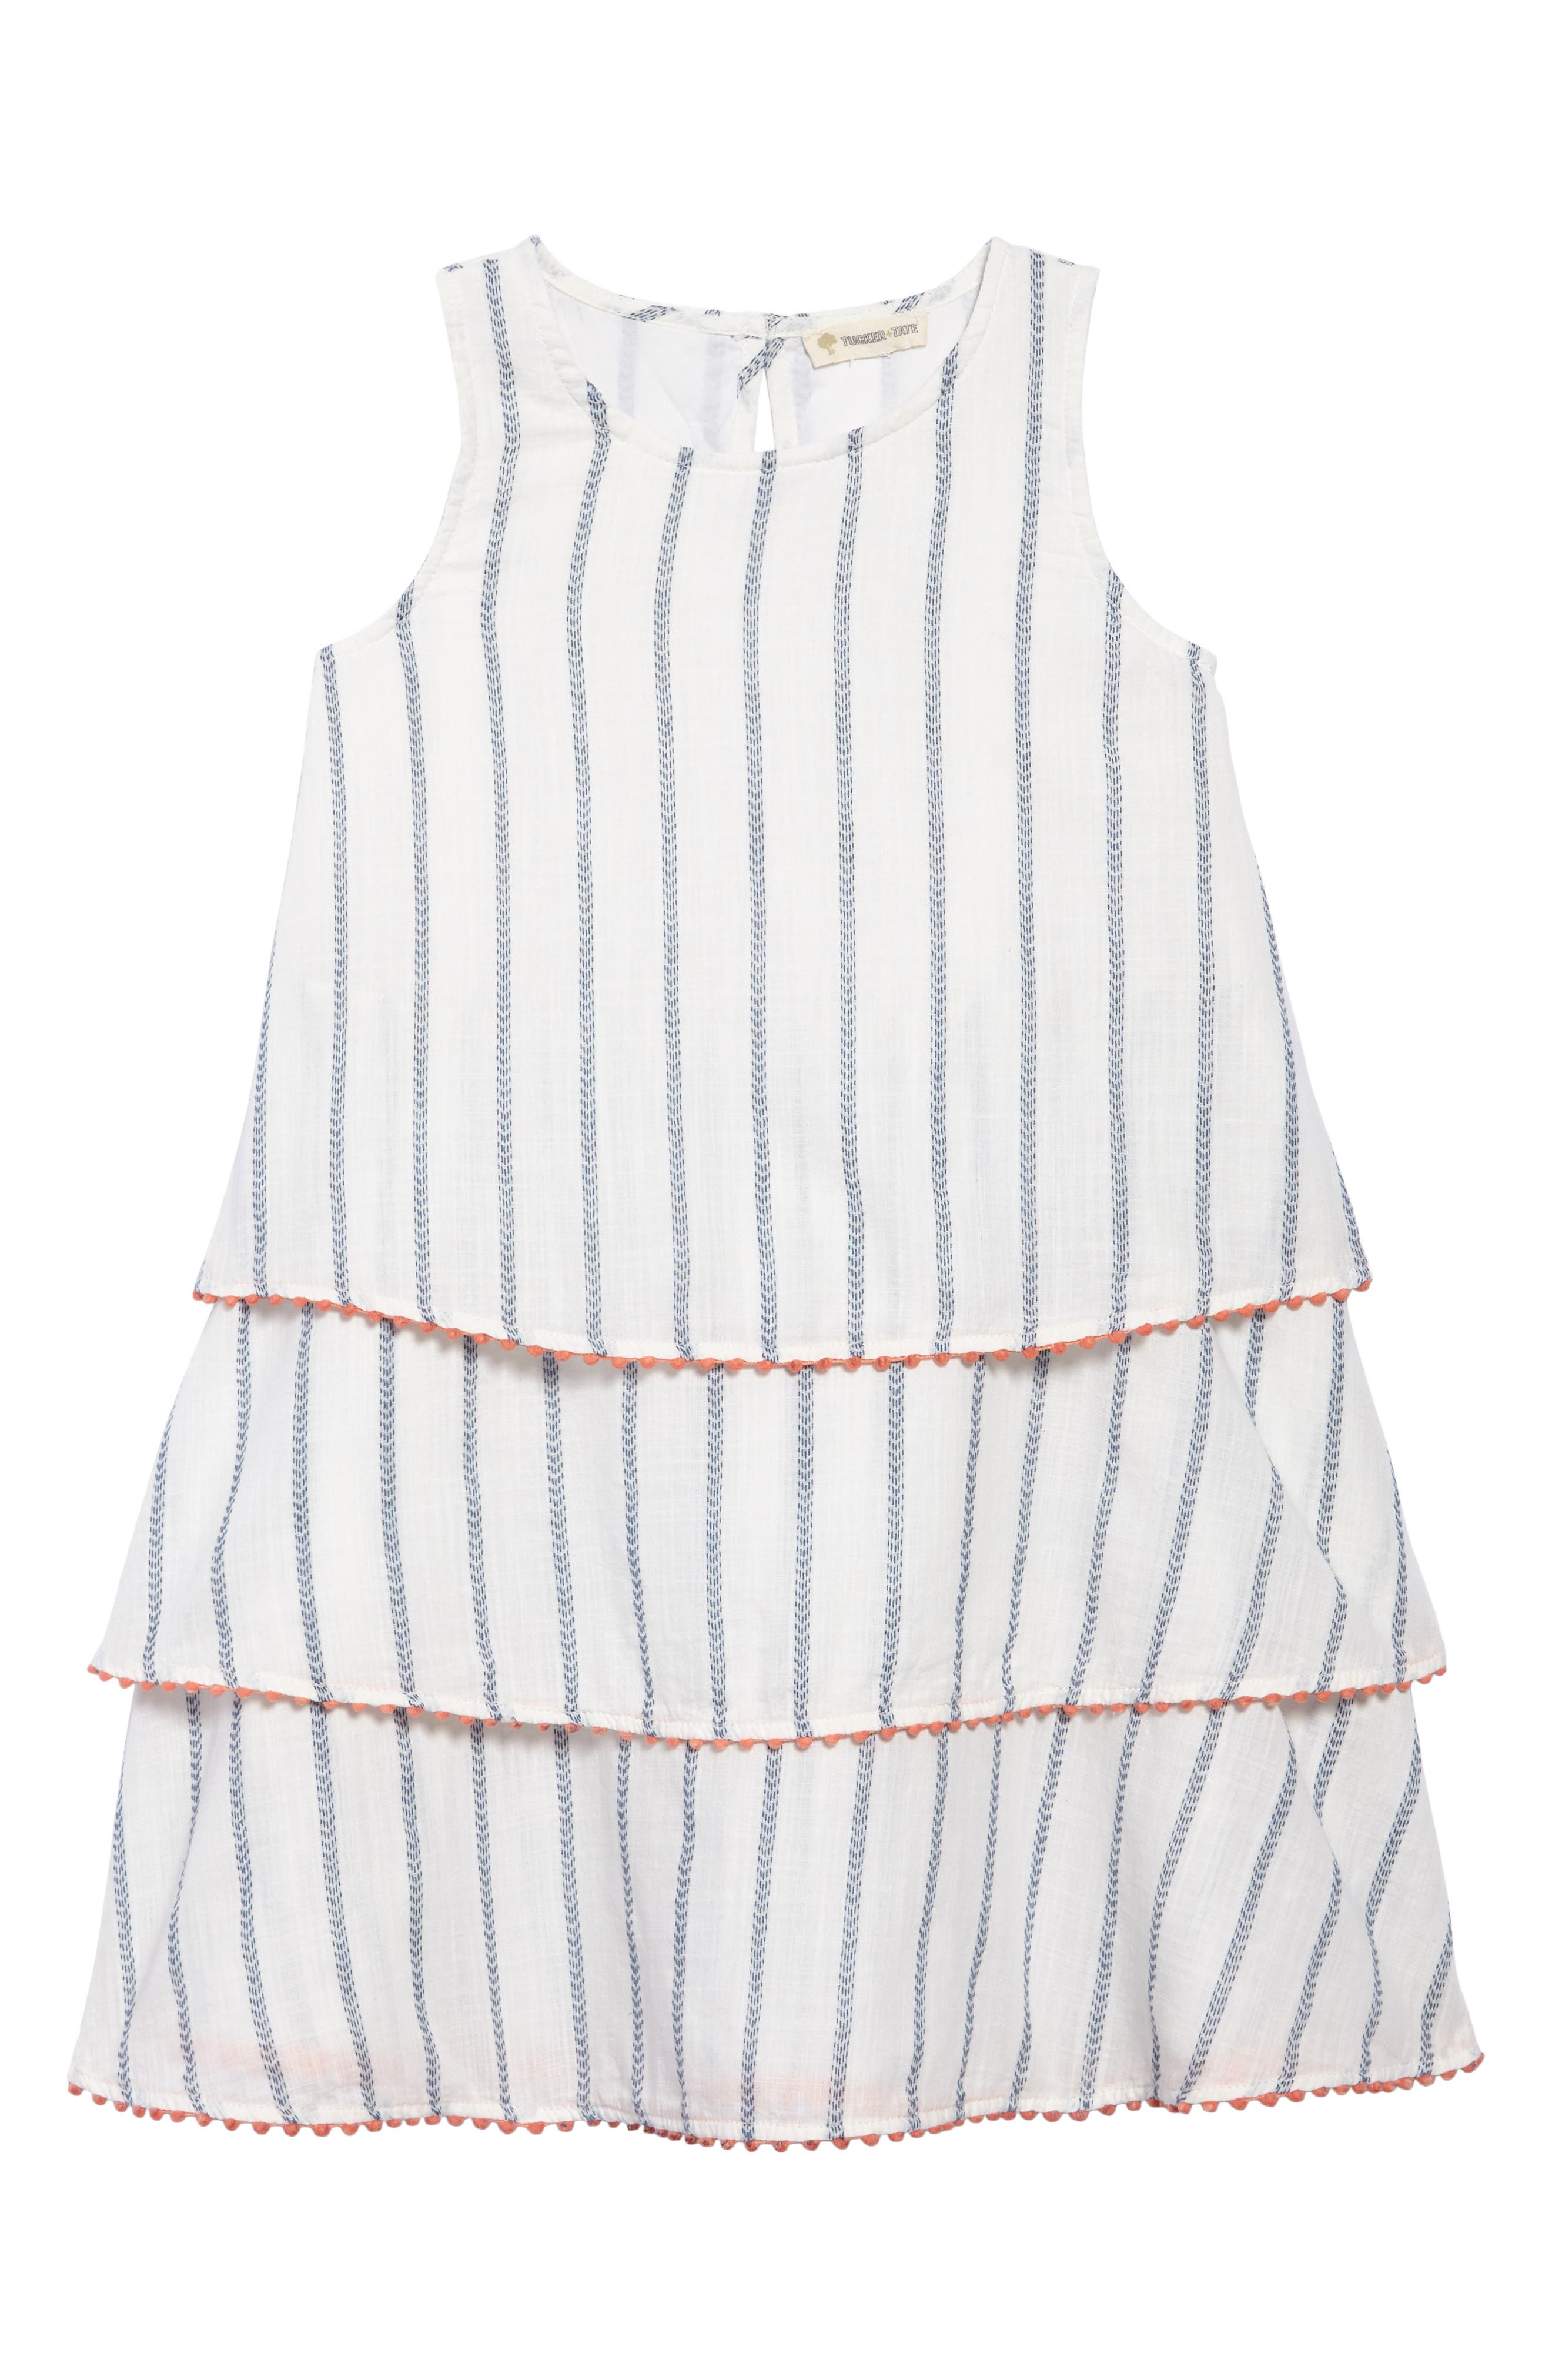 Tiered Woven Dress,                         Main,                         color, White- Blue Stripe